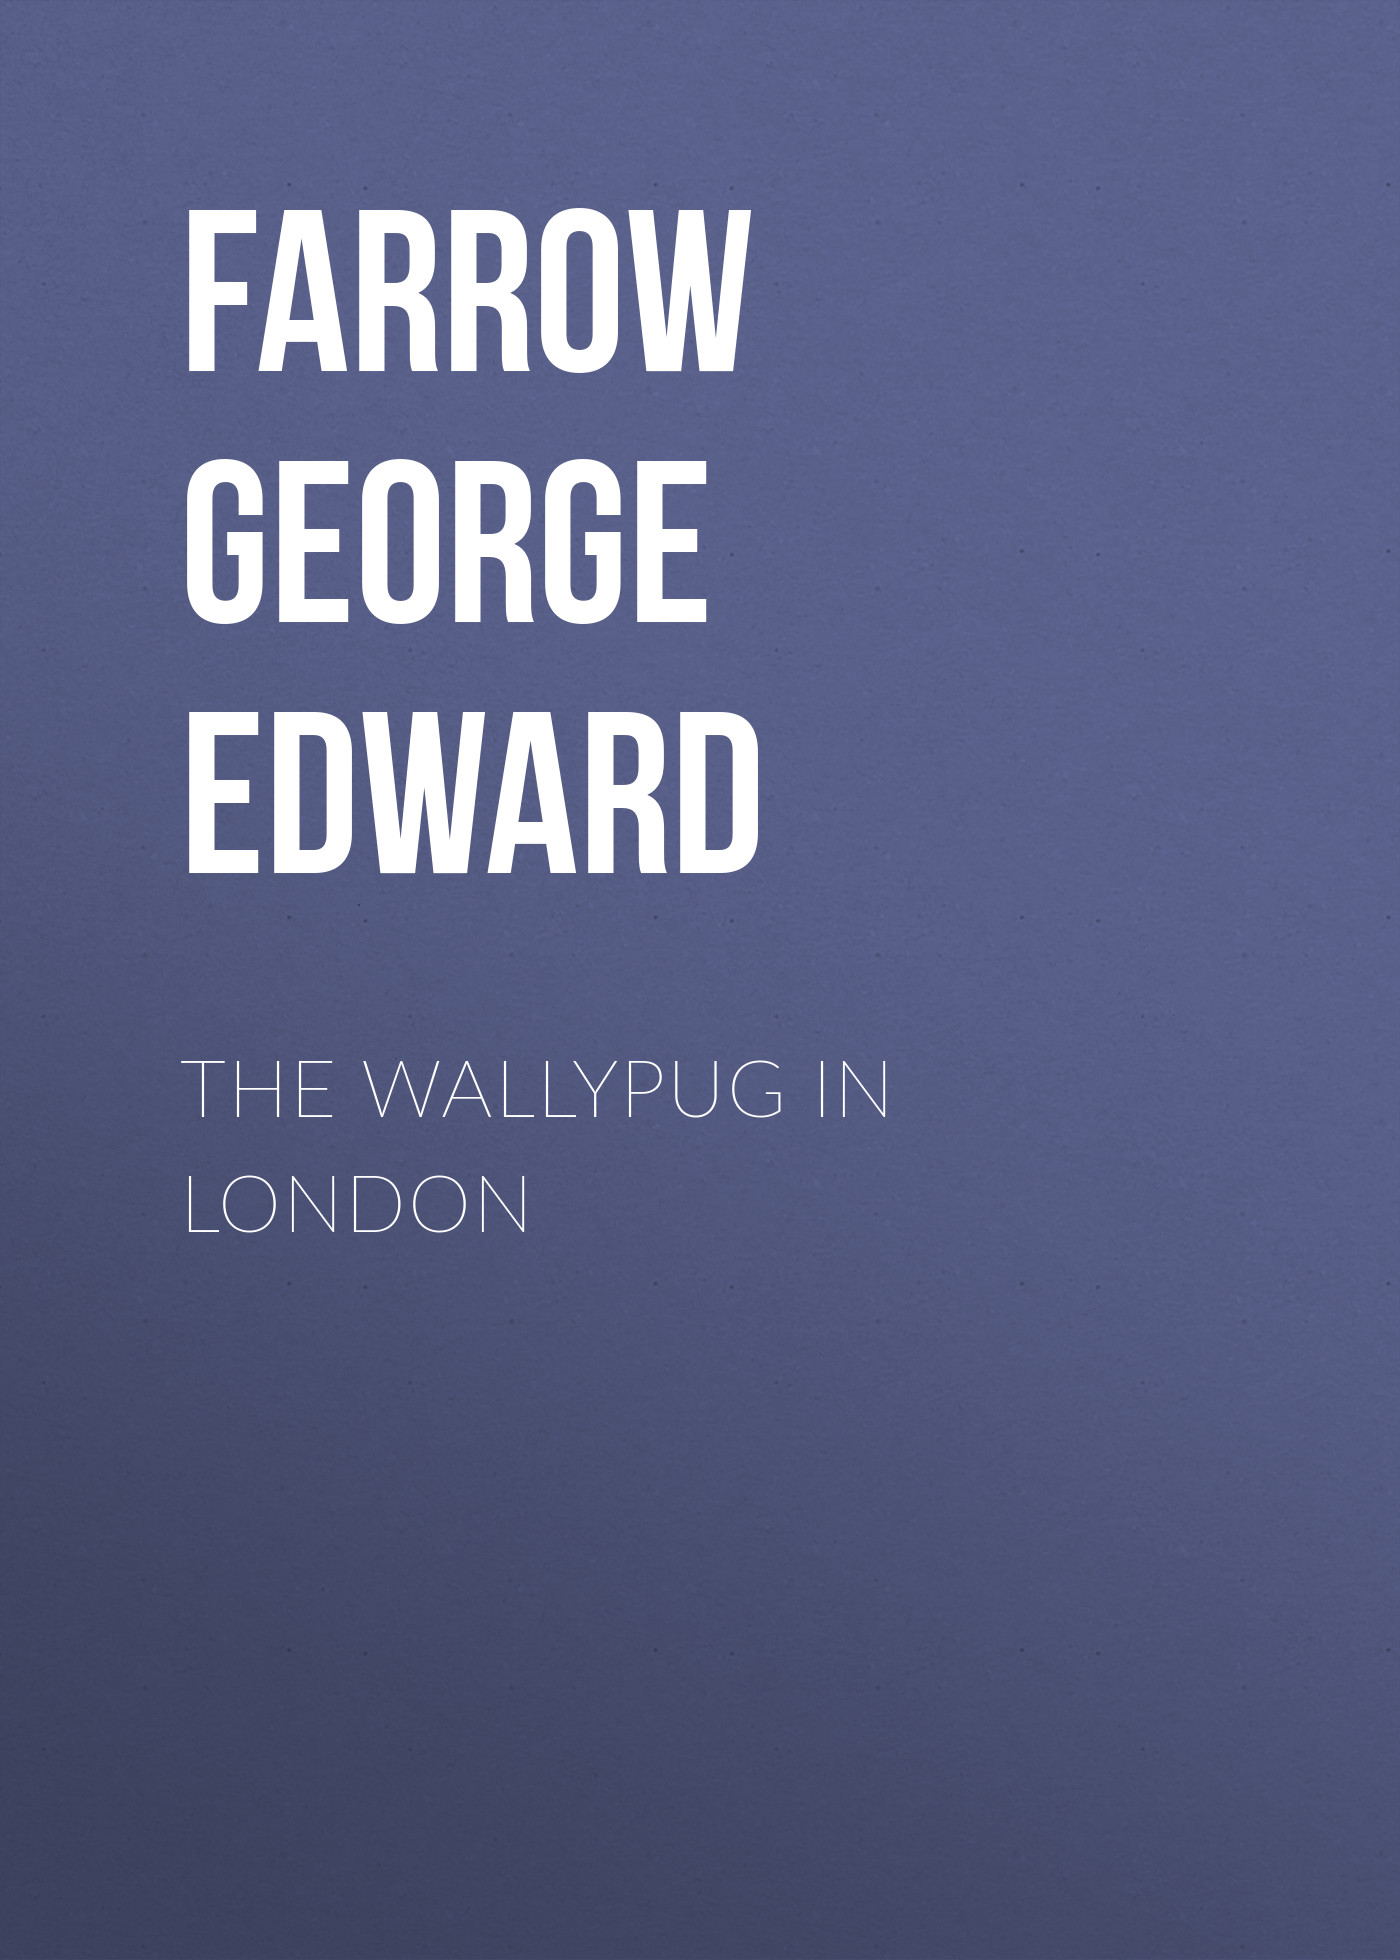 Farrow George Edward The Wallypug in London george billman edward novel therapeutic targets for antiarrhythmic drugs